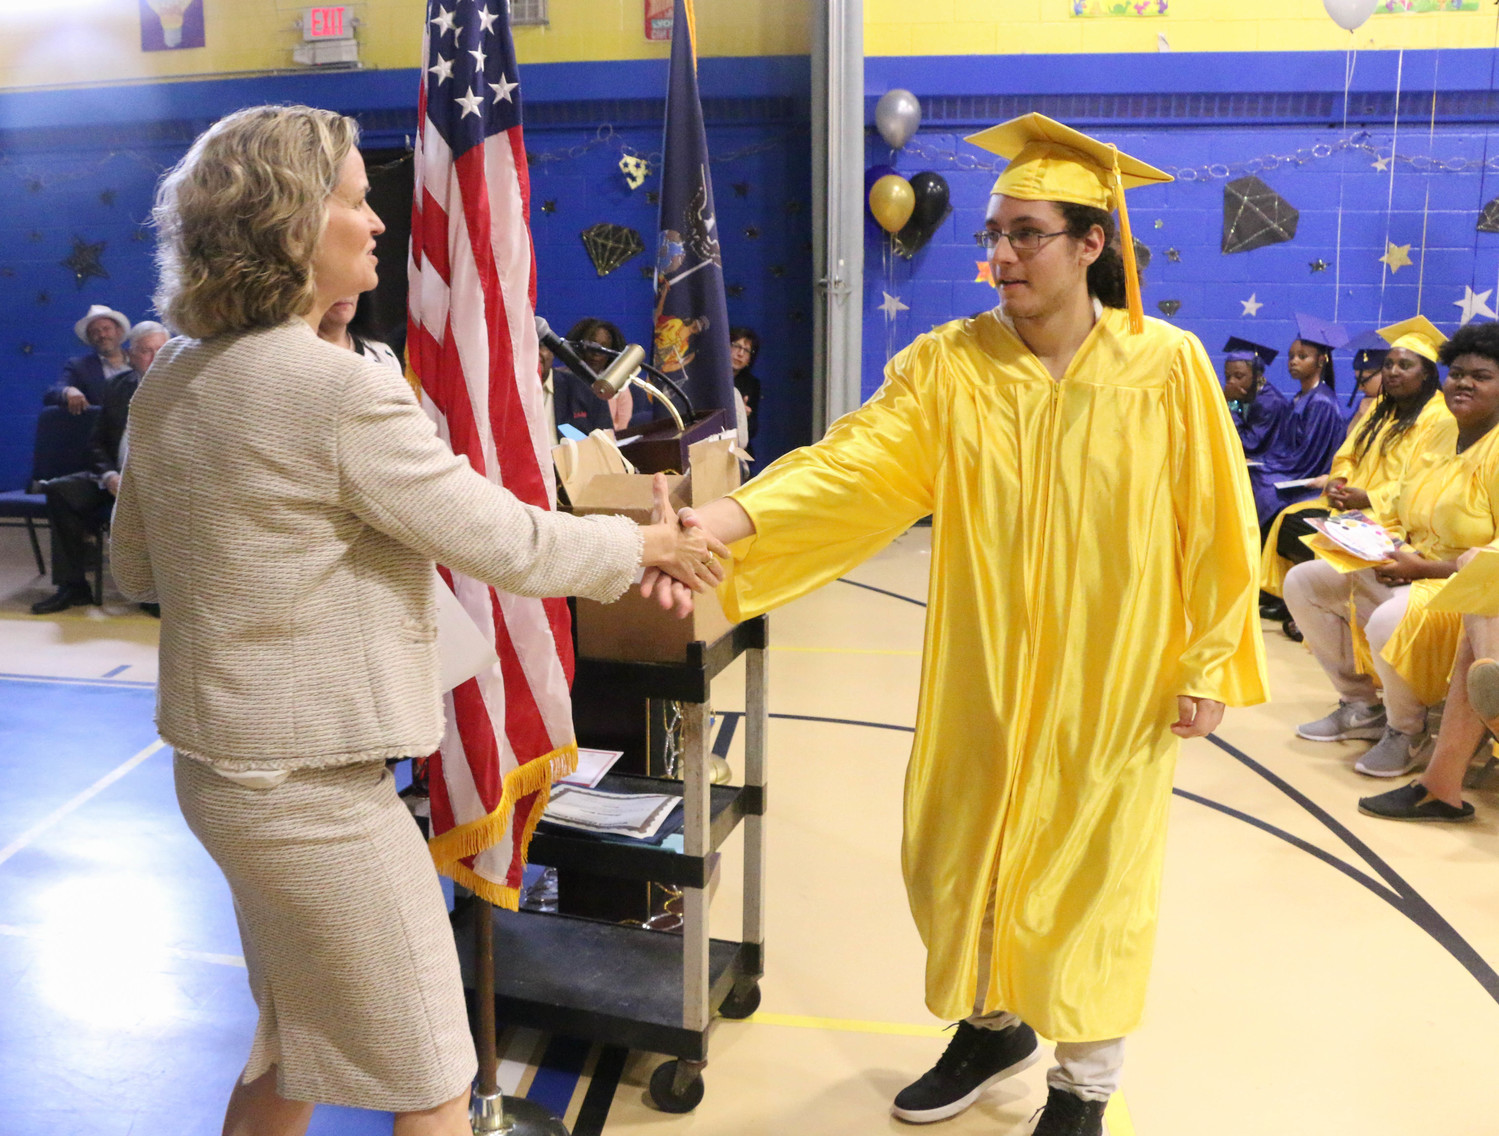 Nassau County Executive Laura Curran, right, handed Phillip Plangetis his high school diploma during the graduation ceremony.